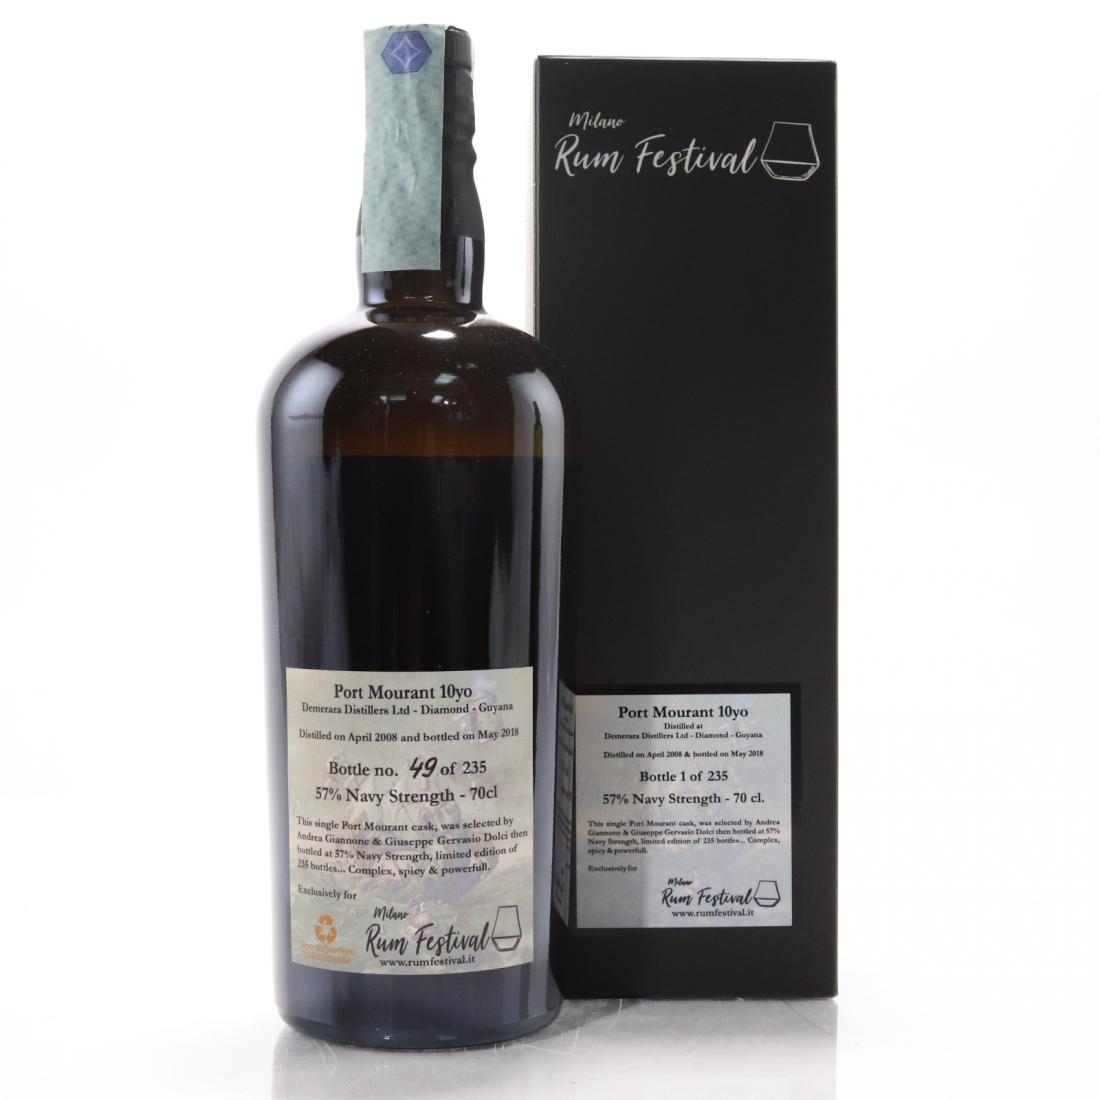 Port Mourant 2008 Single Cask 10 Year Old / Milan Rum Festival 2018